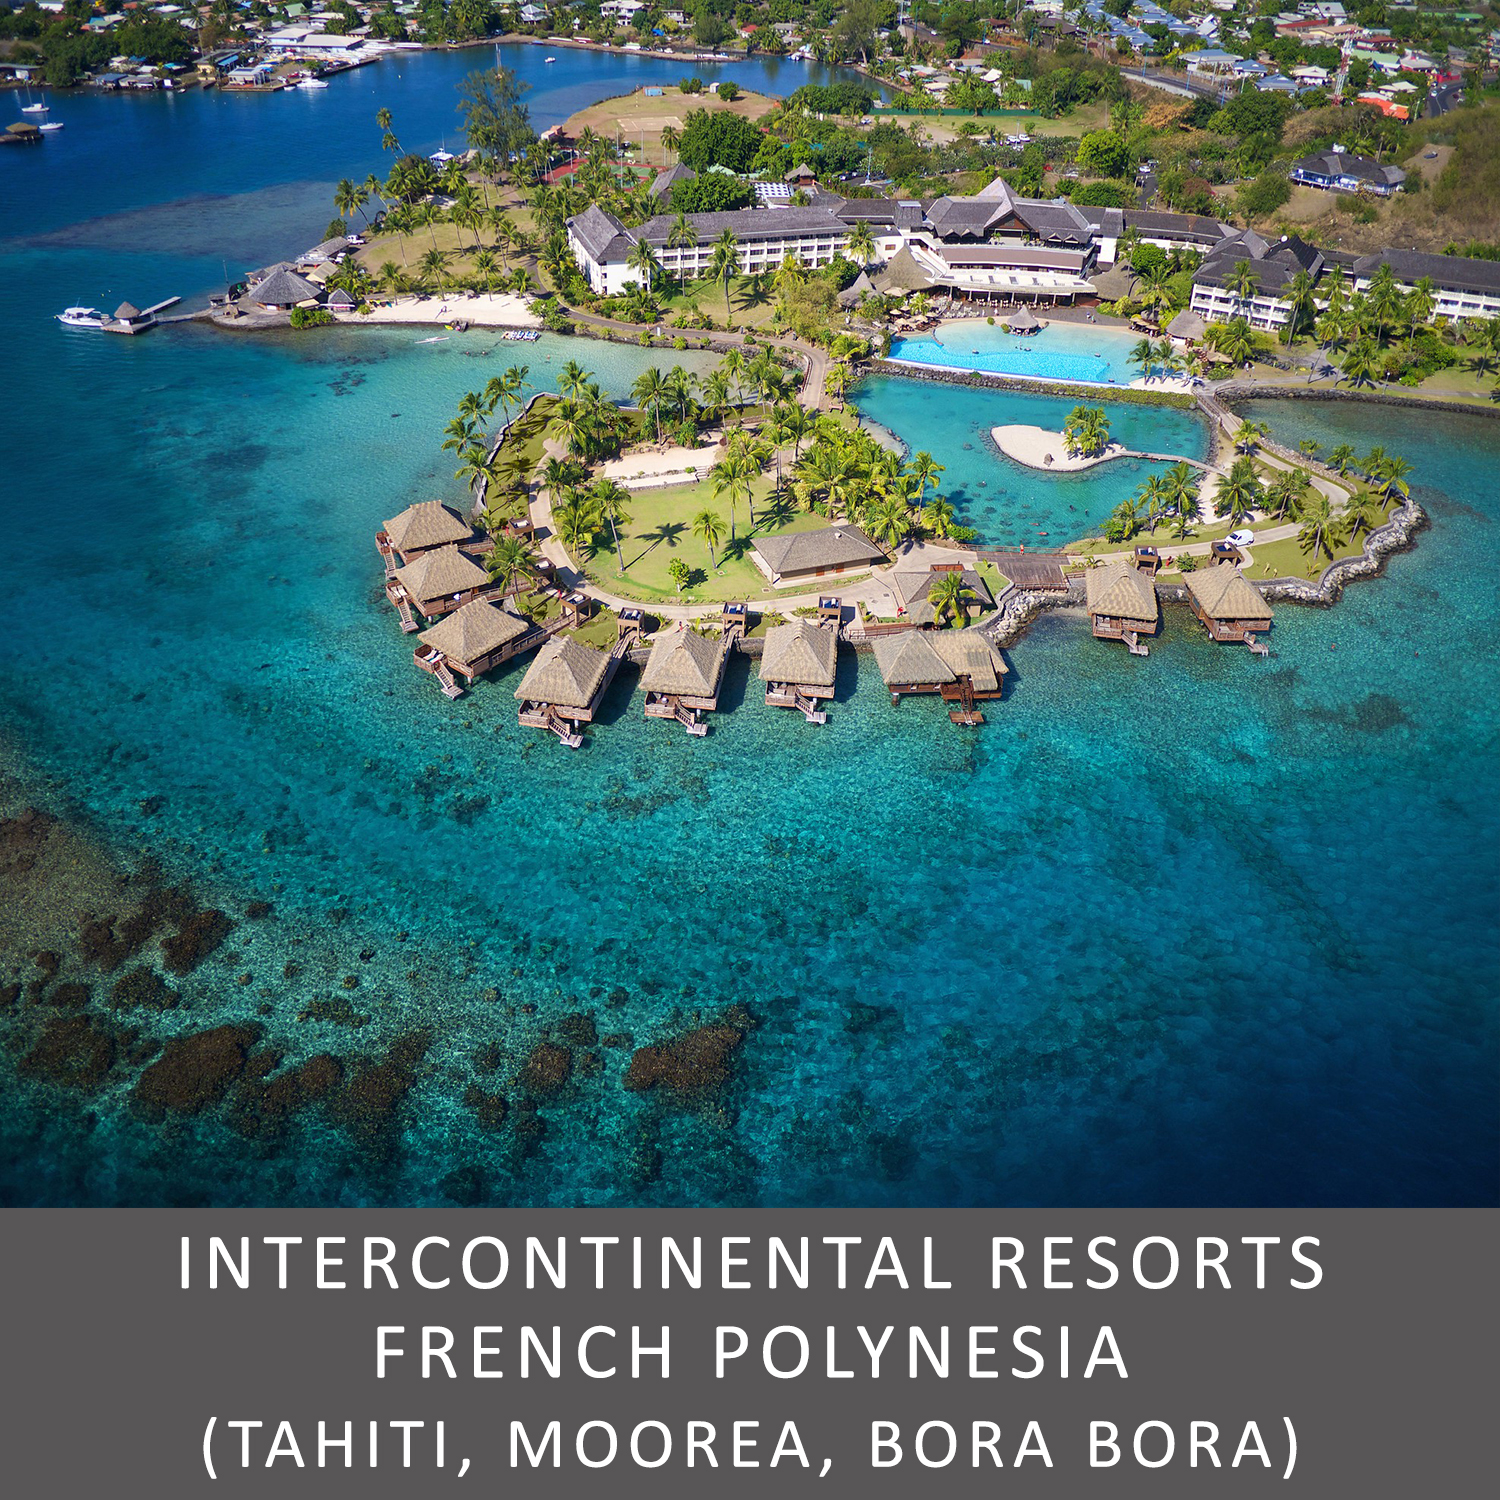 InterContinental French Polynesia